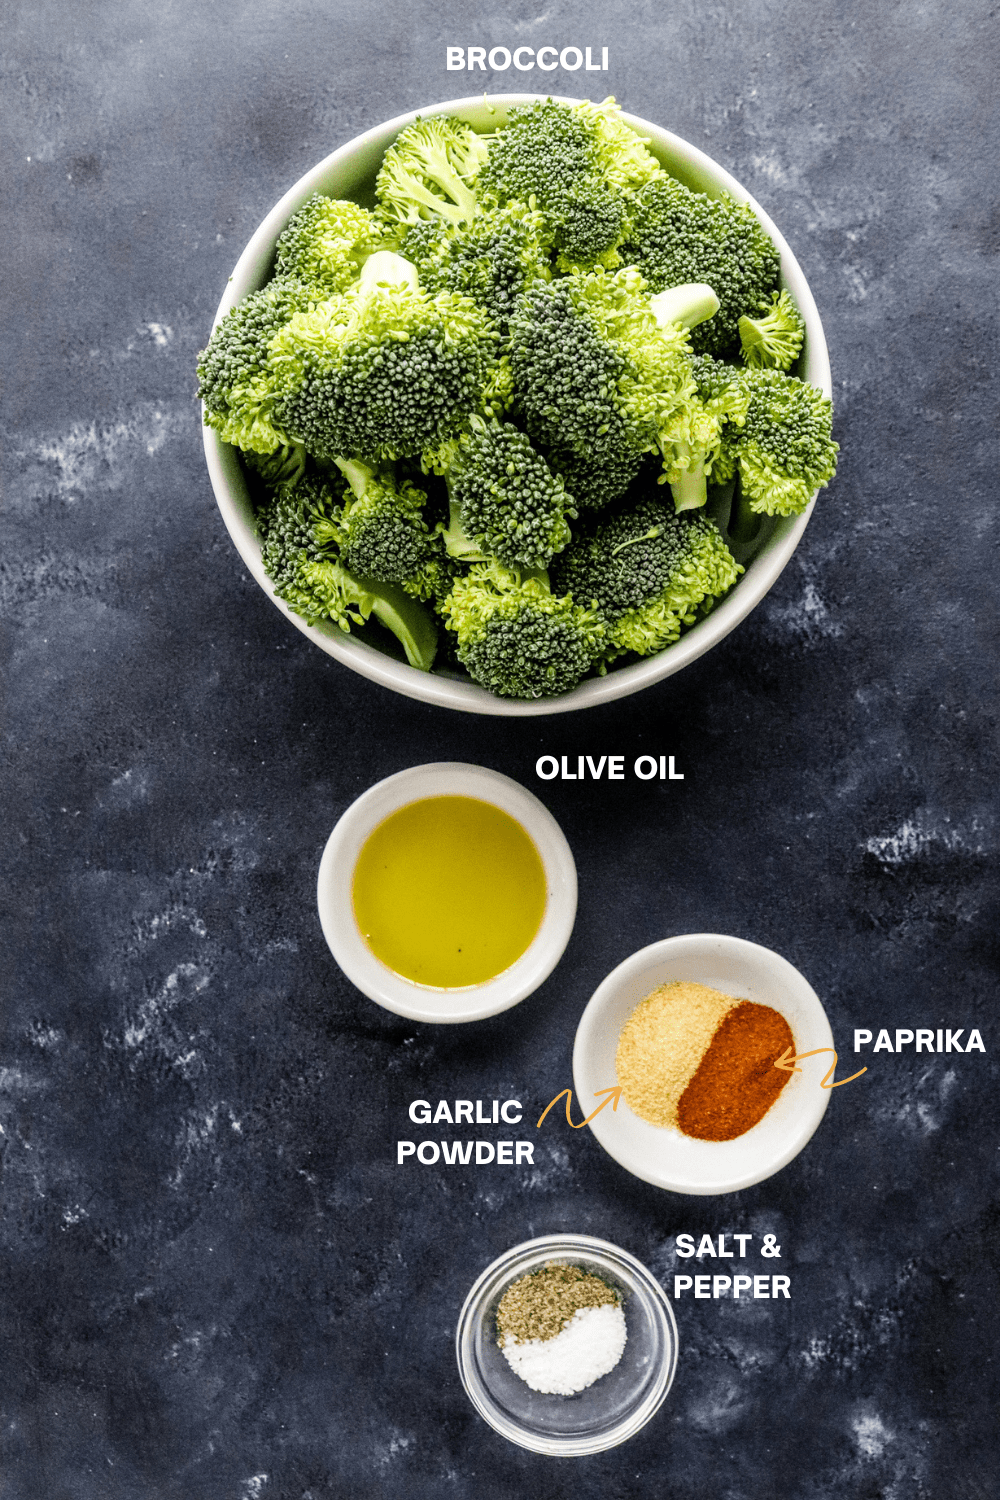 Broccoli cut up in a round white bowl with a small bowl of oil and spices next to it.